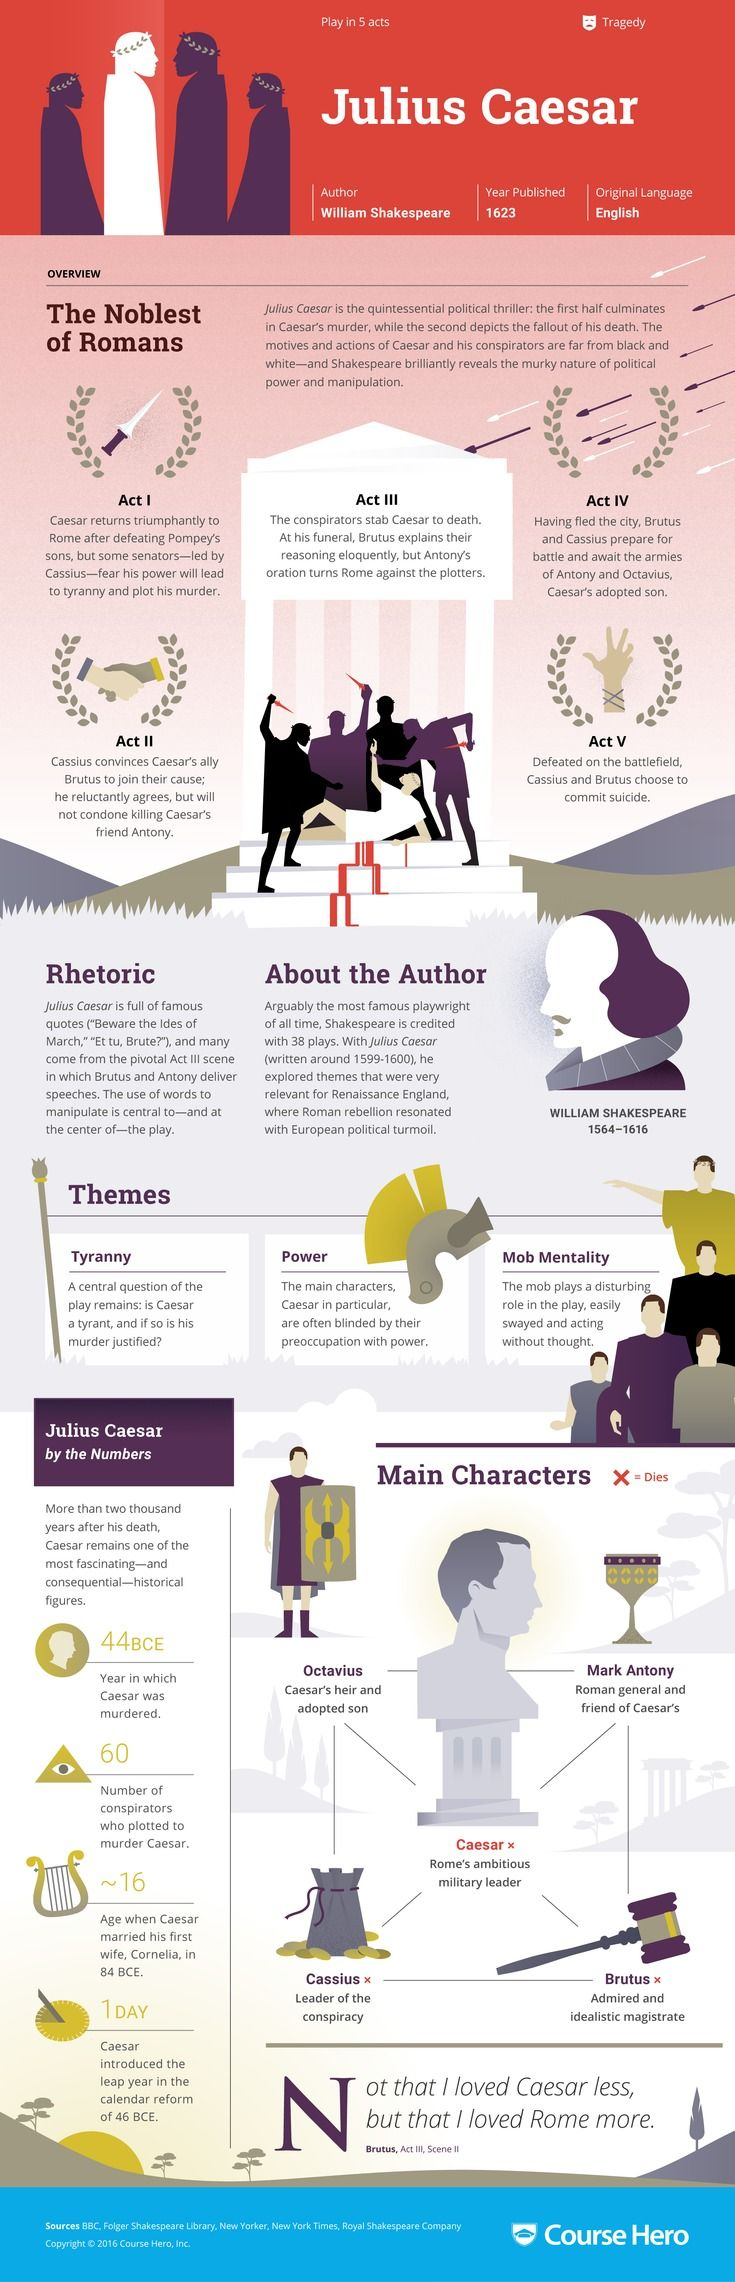 'Julius Caesar' infographic from Course Hero.